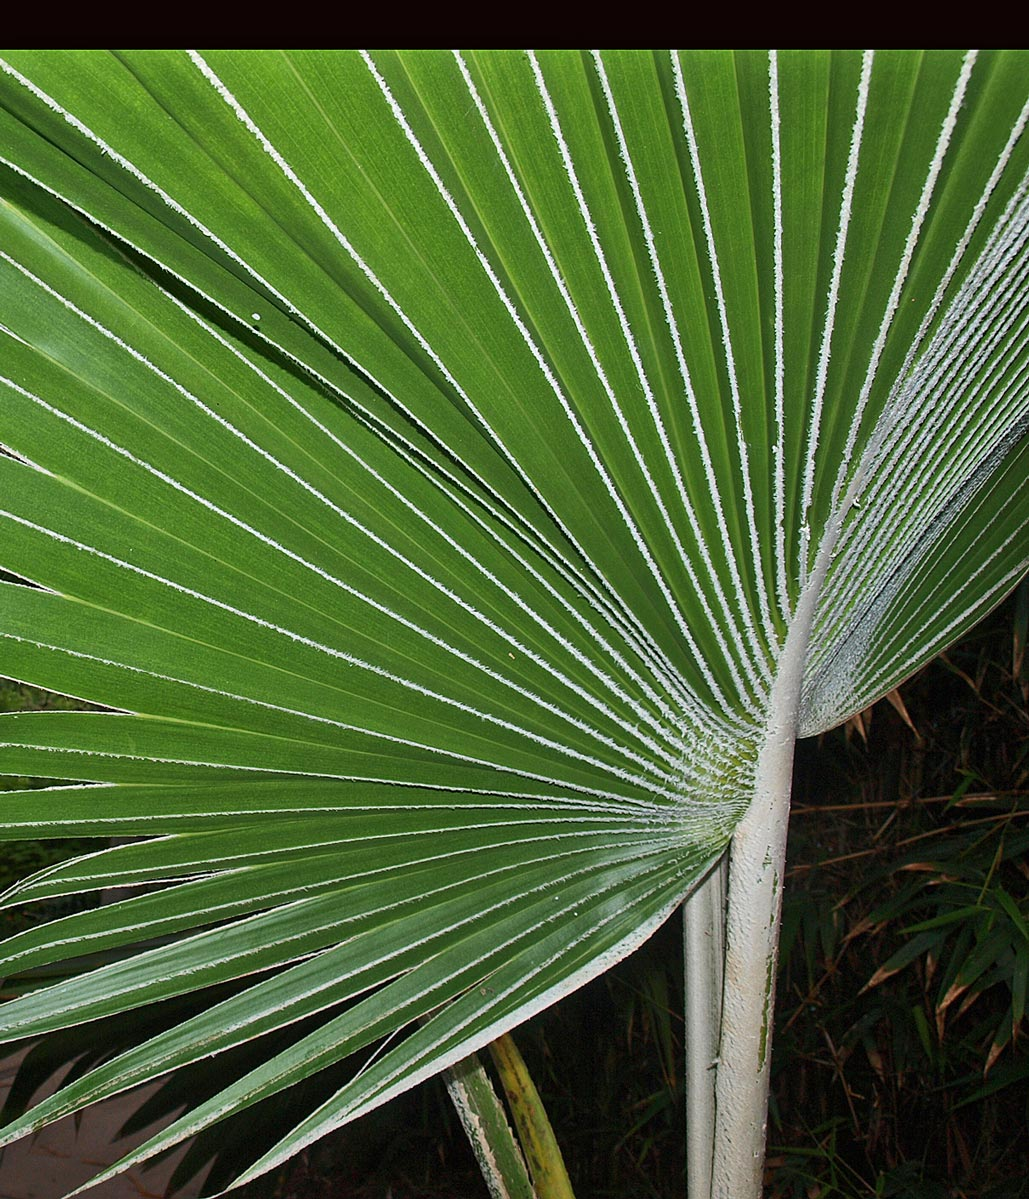 <p><em>Pritchardia hillebrandii</em> leaf with dense white tomentum on petiole and midribs</p>